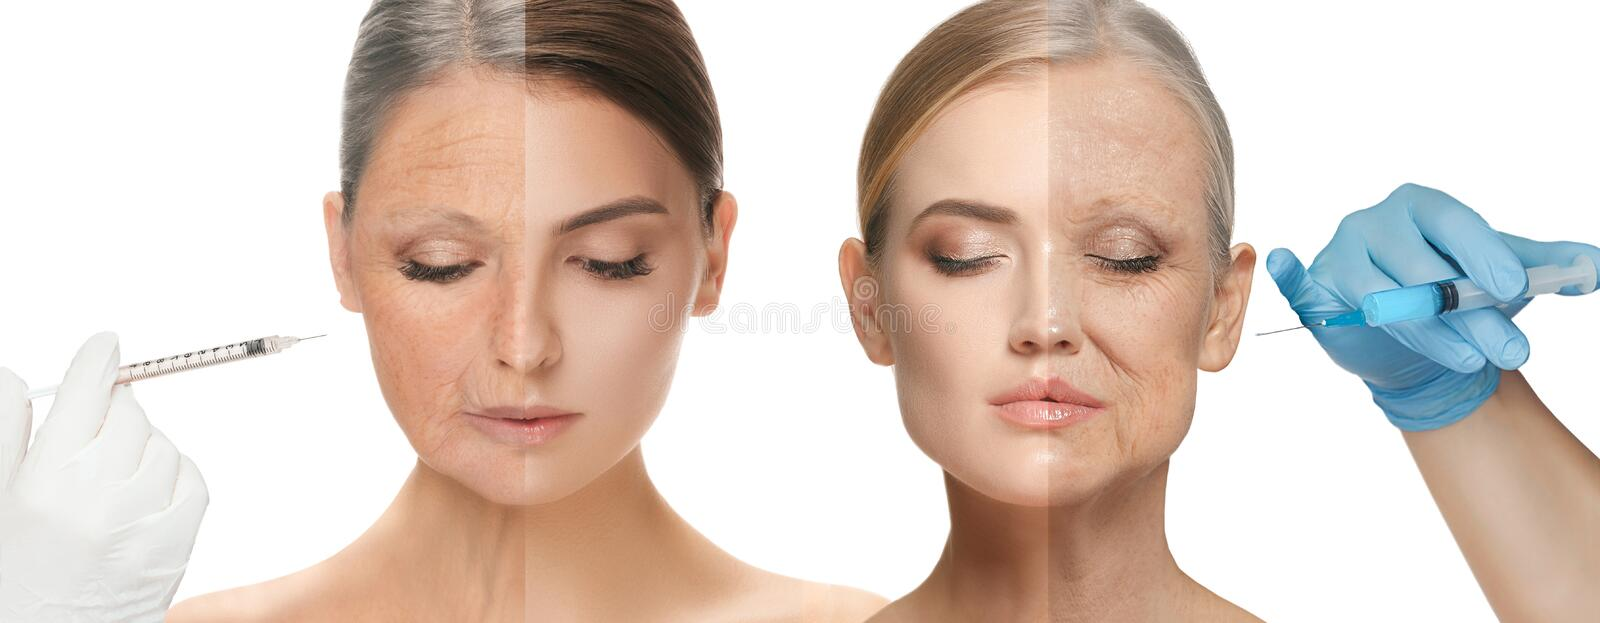 Beautiful female face, concept of skincare and lifting royalty free stock photo